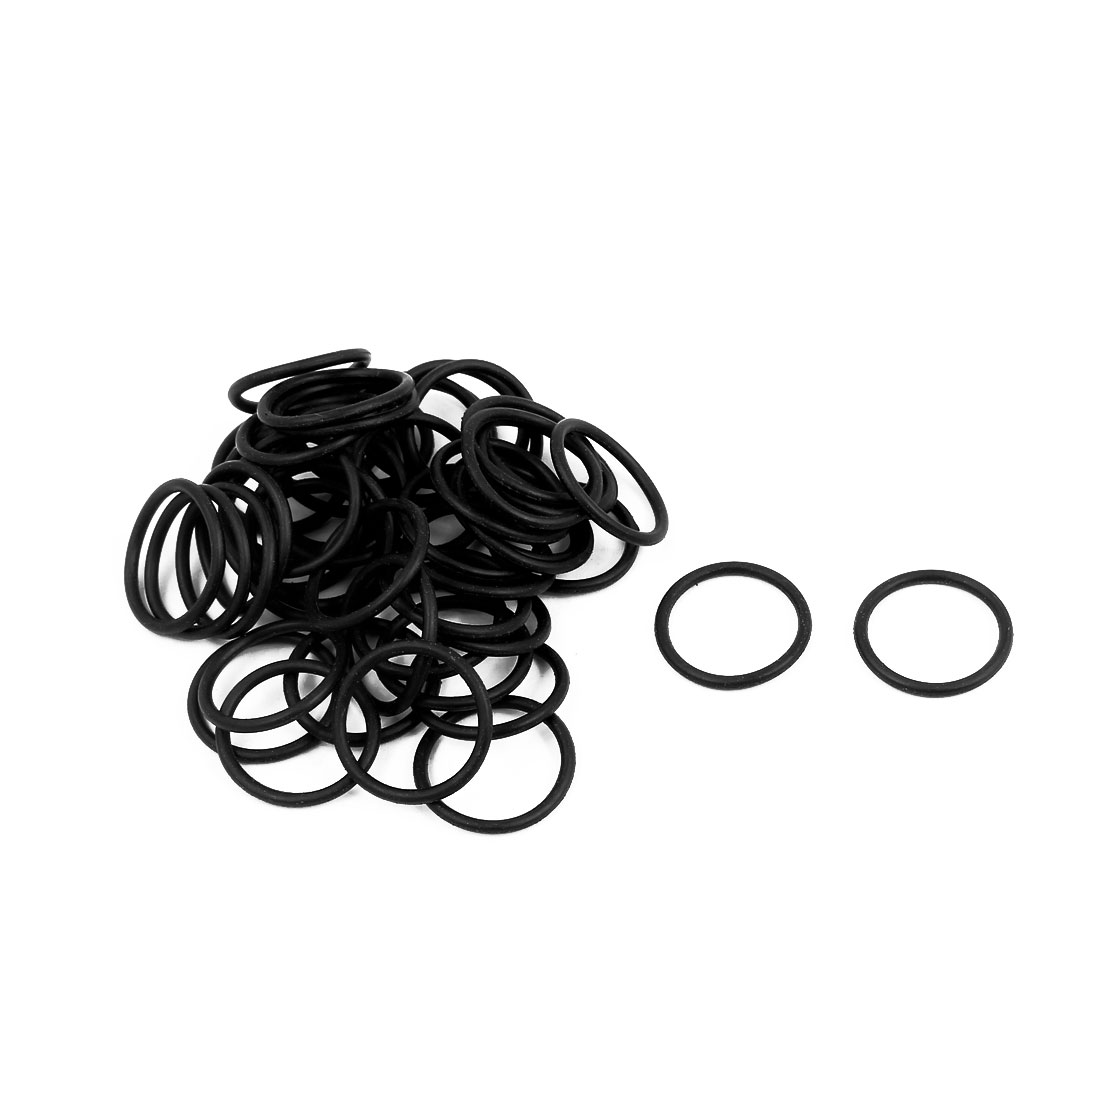 50Pcs 17x1.5mm Nitrile Rubber O-rings Heat Resistant Sealing Ring Grommets Black